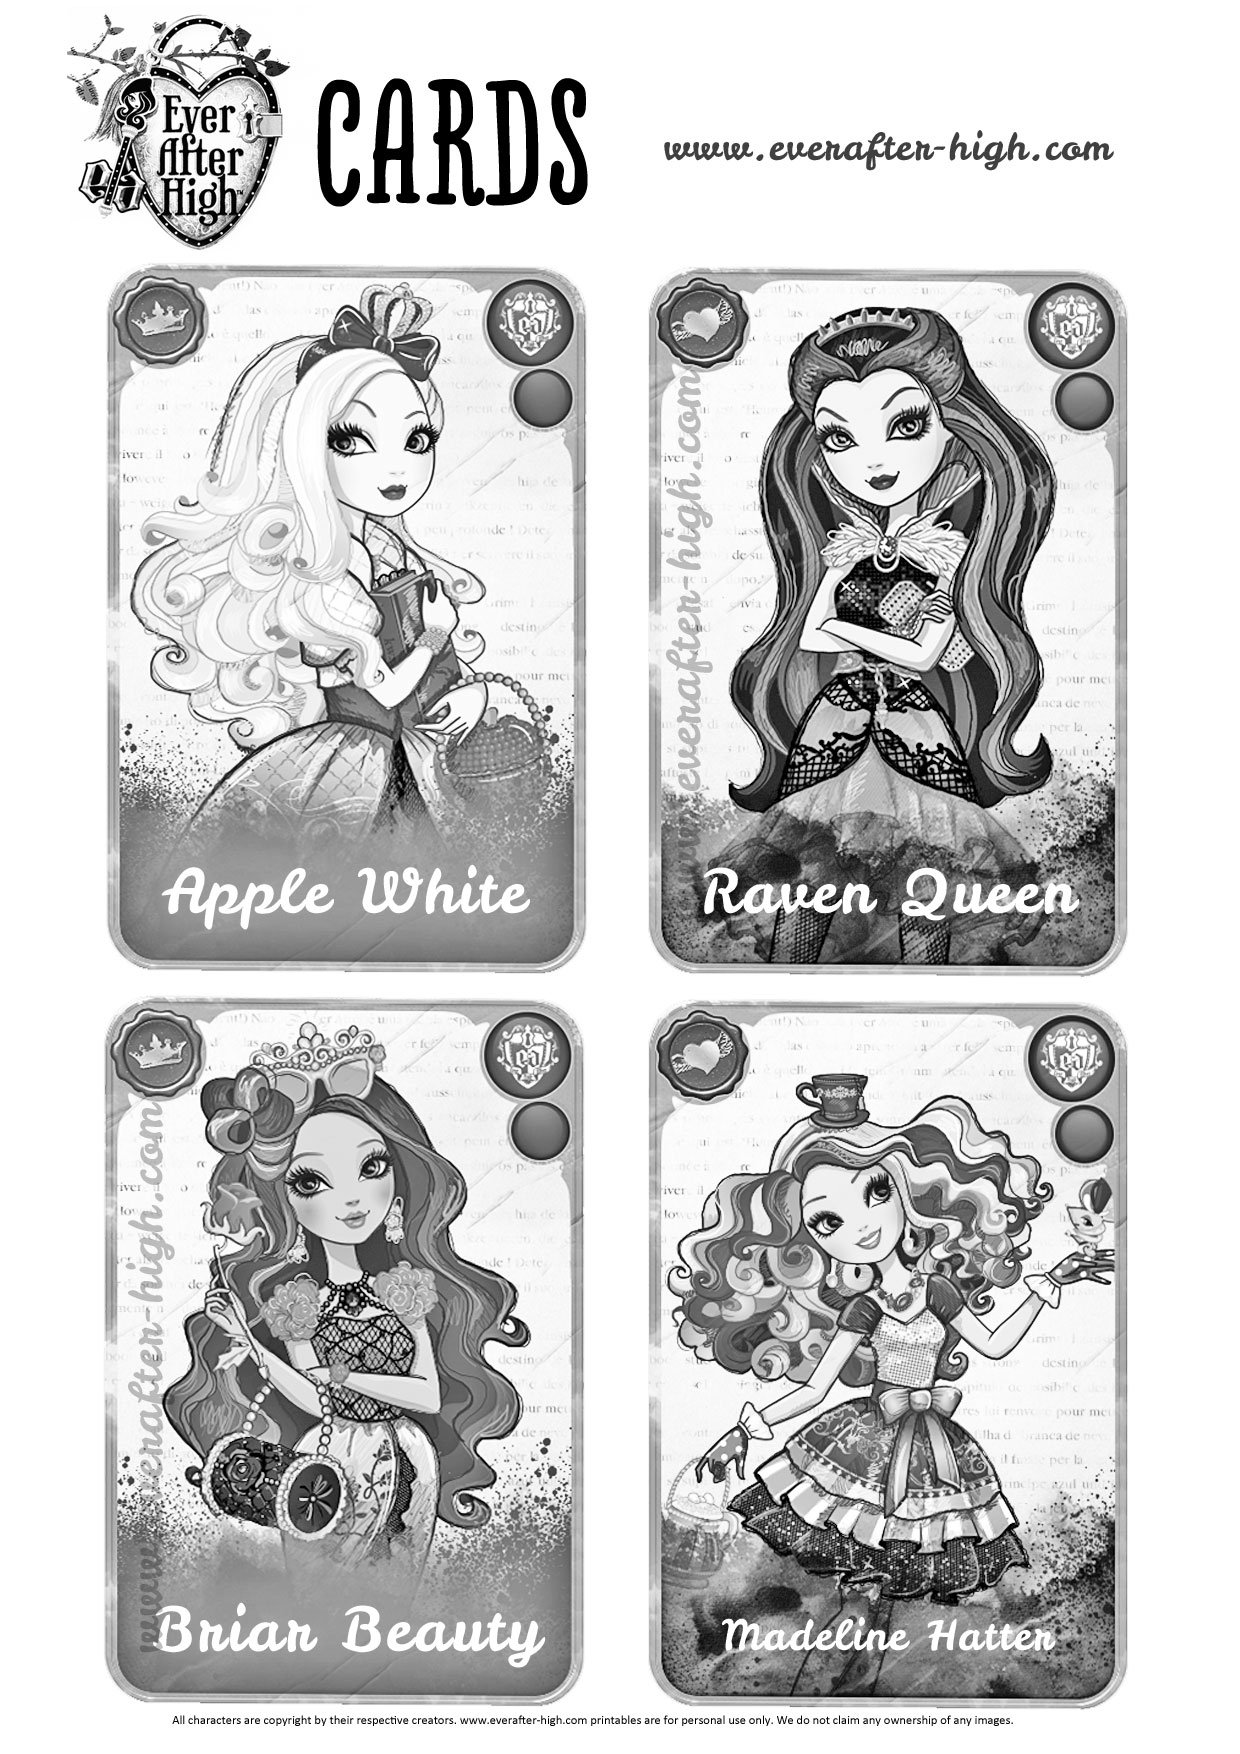 Printable coloring pages ever after high - Ever After High Cards Coloring Page